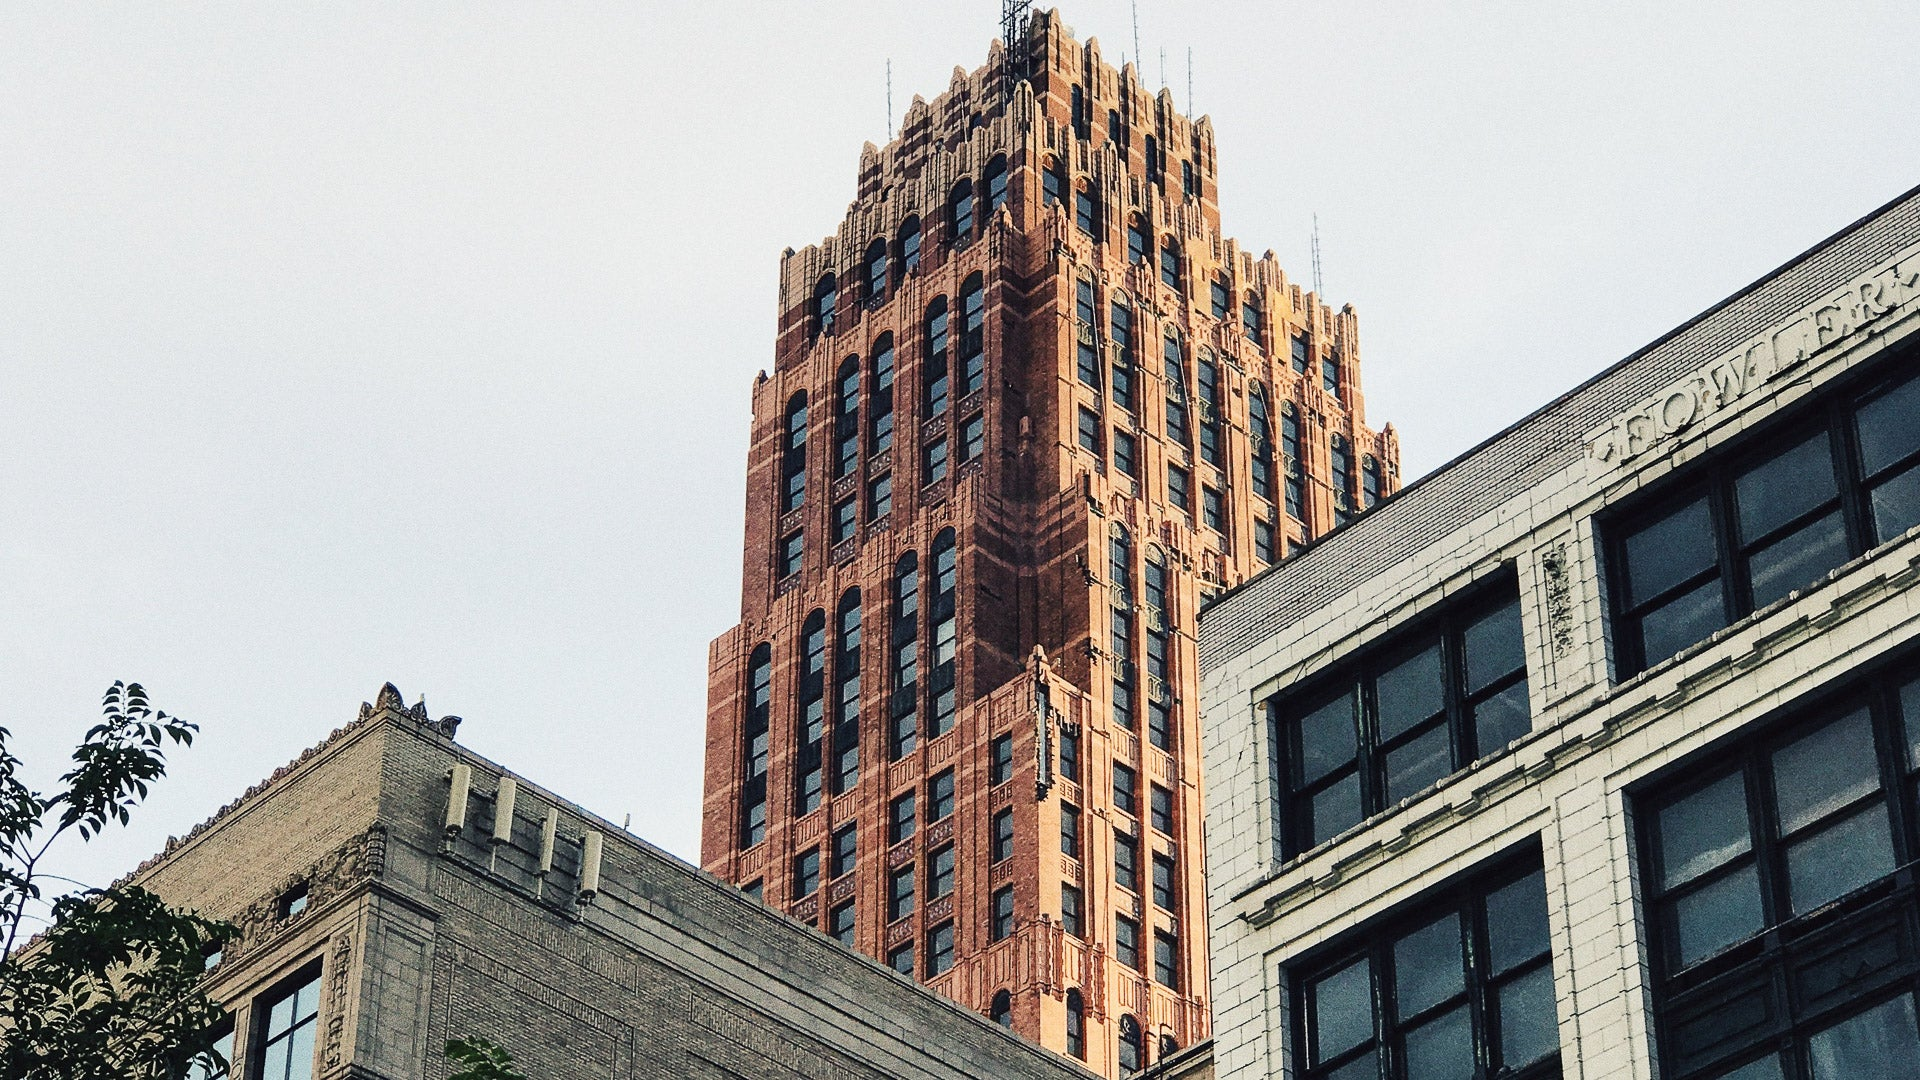 Architecture in Downtown Detroit